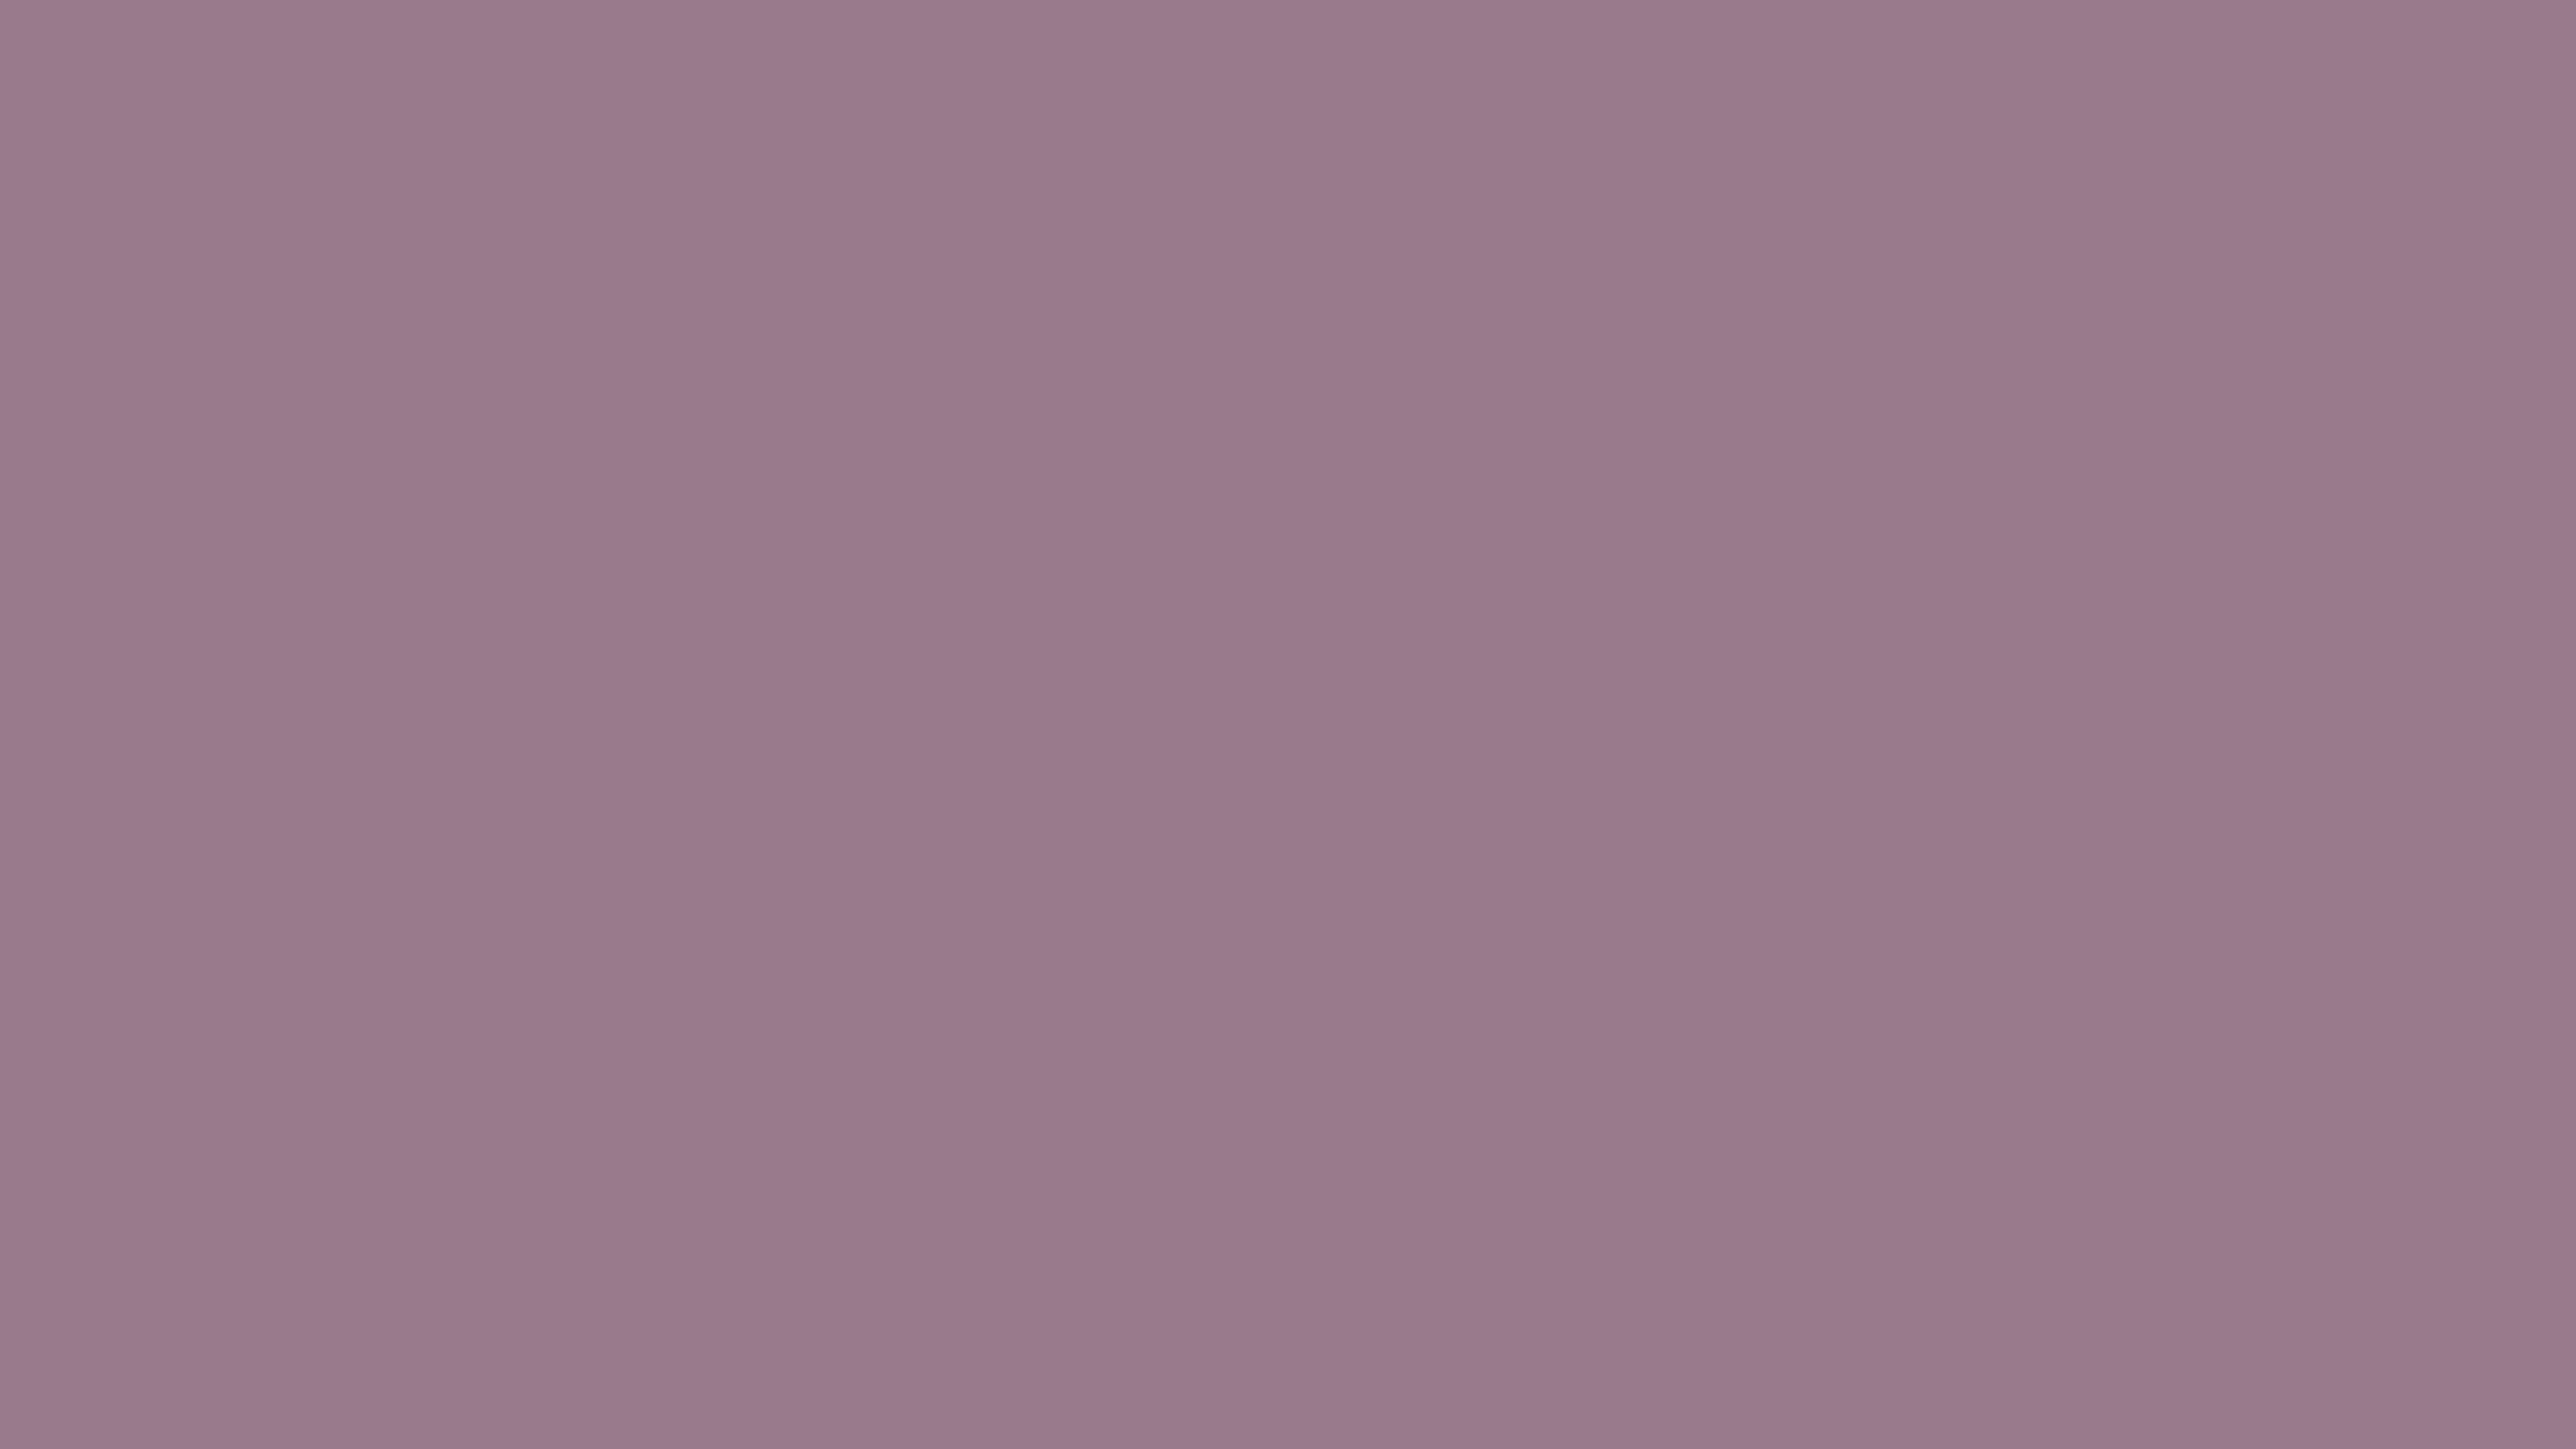 4096x2304 Mountbatten Pink Solid Color Background